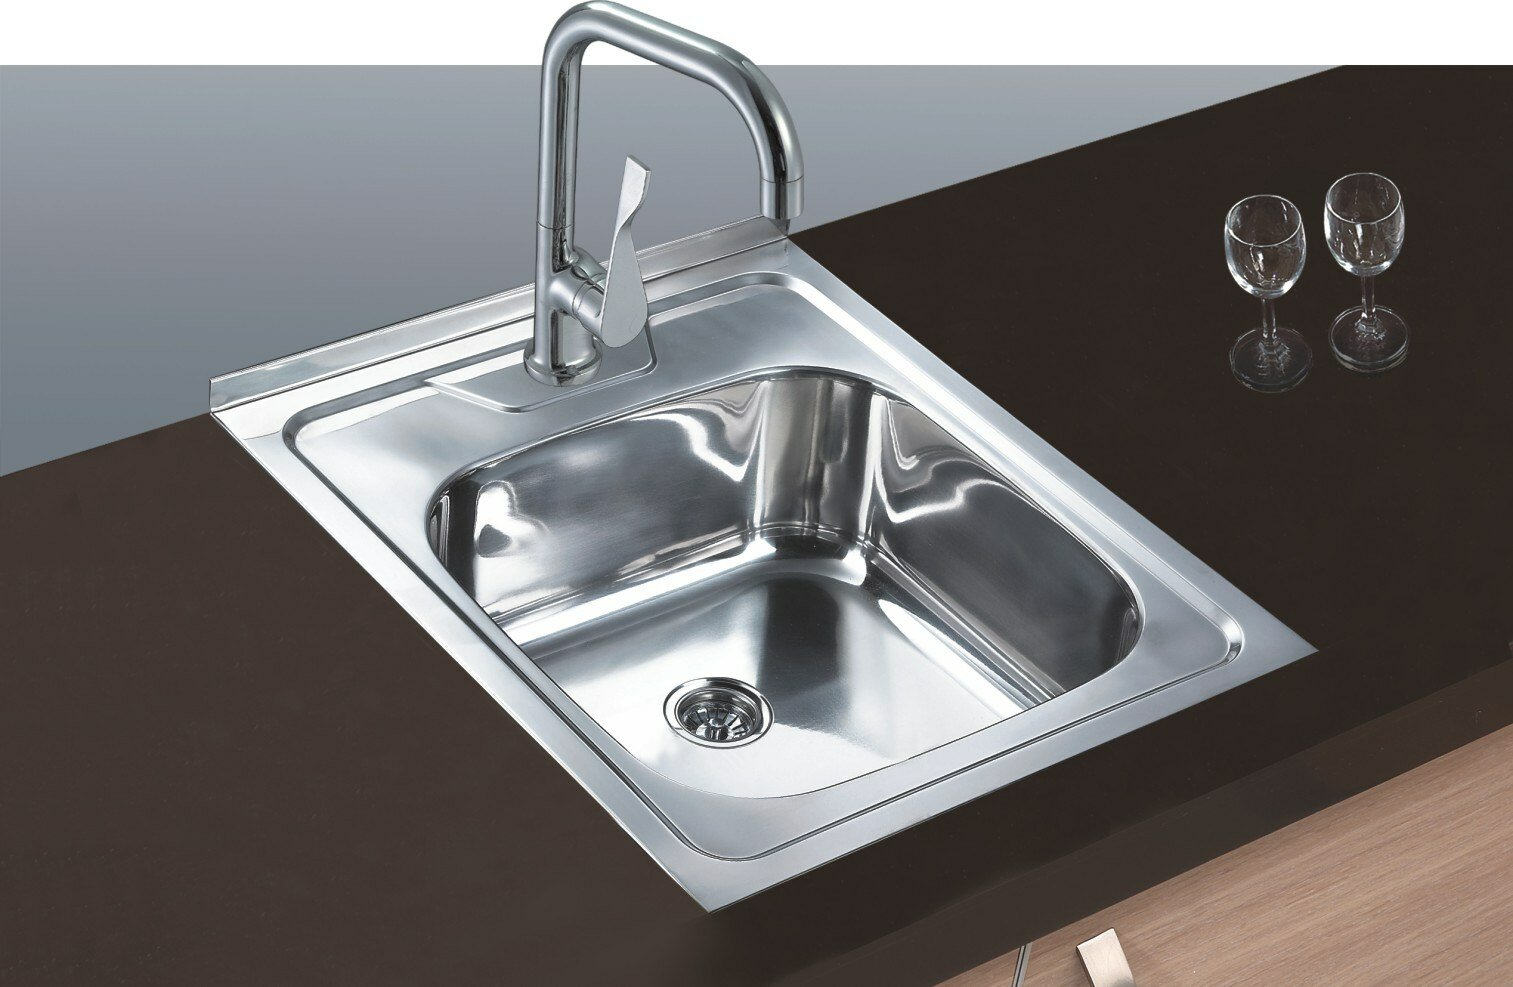 Metal Kitchen Sinks | Kitchen Sinks Stainless Steel | One Bowl Stainless Steel Kitchen Sinks